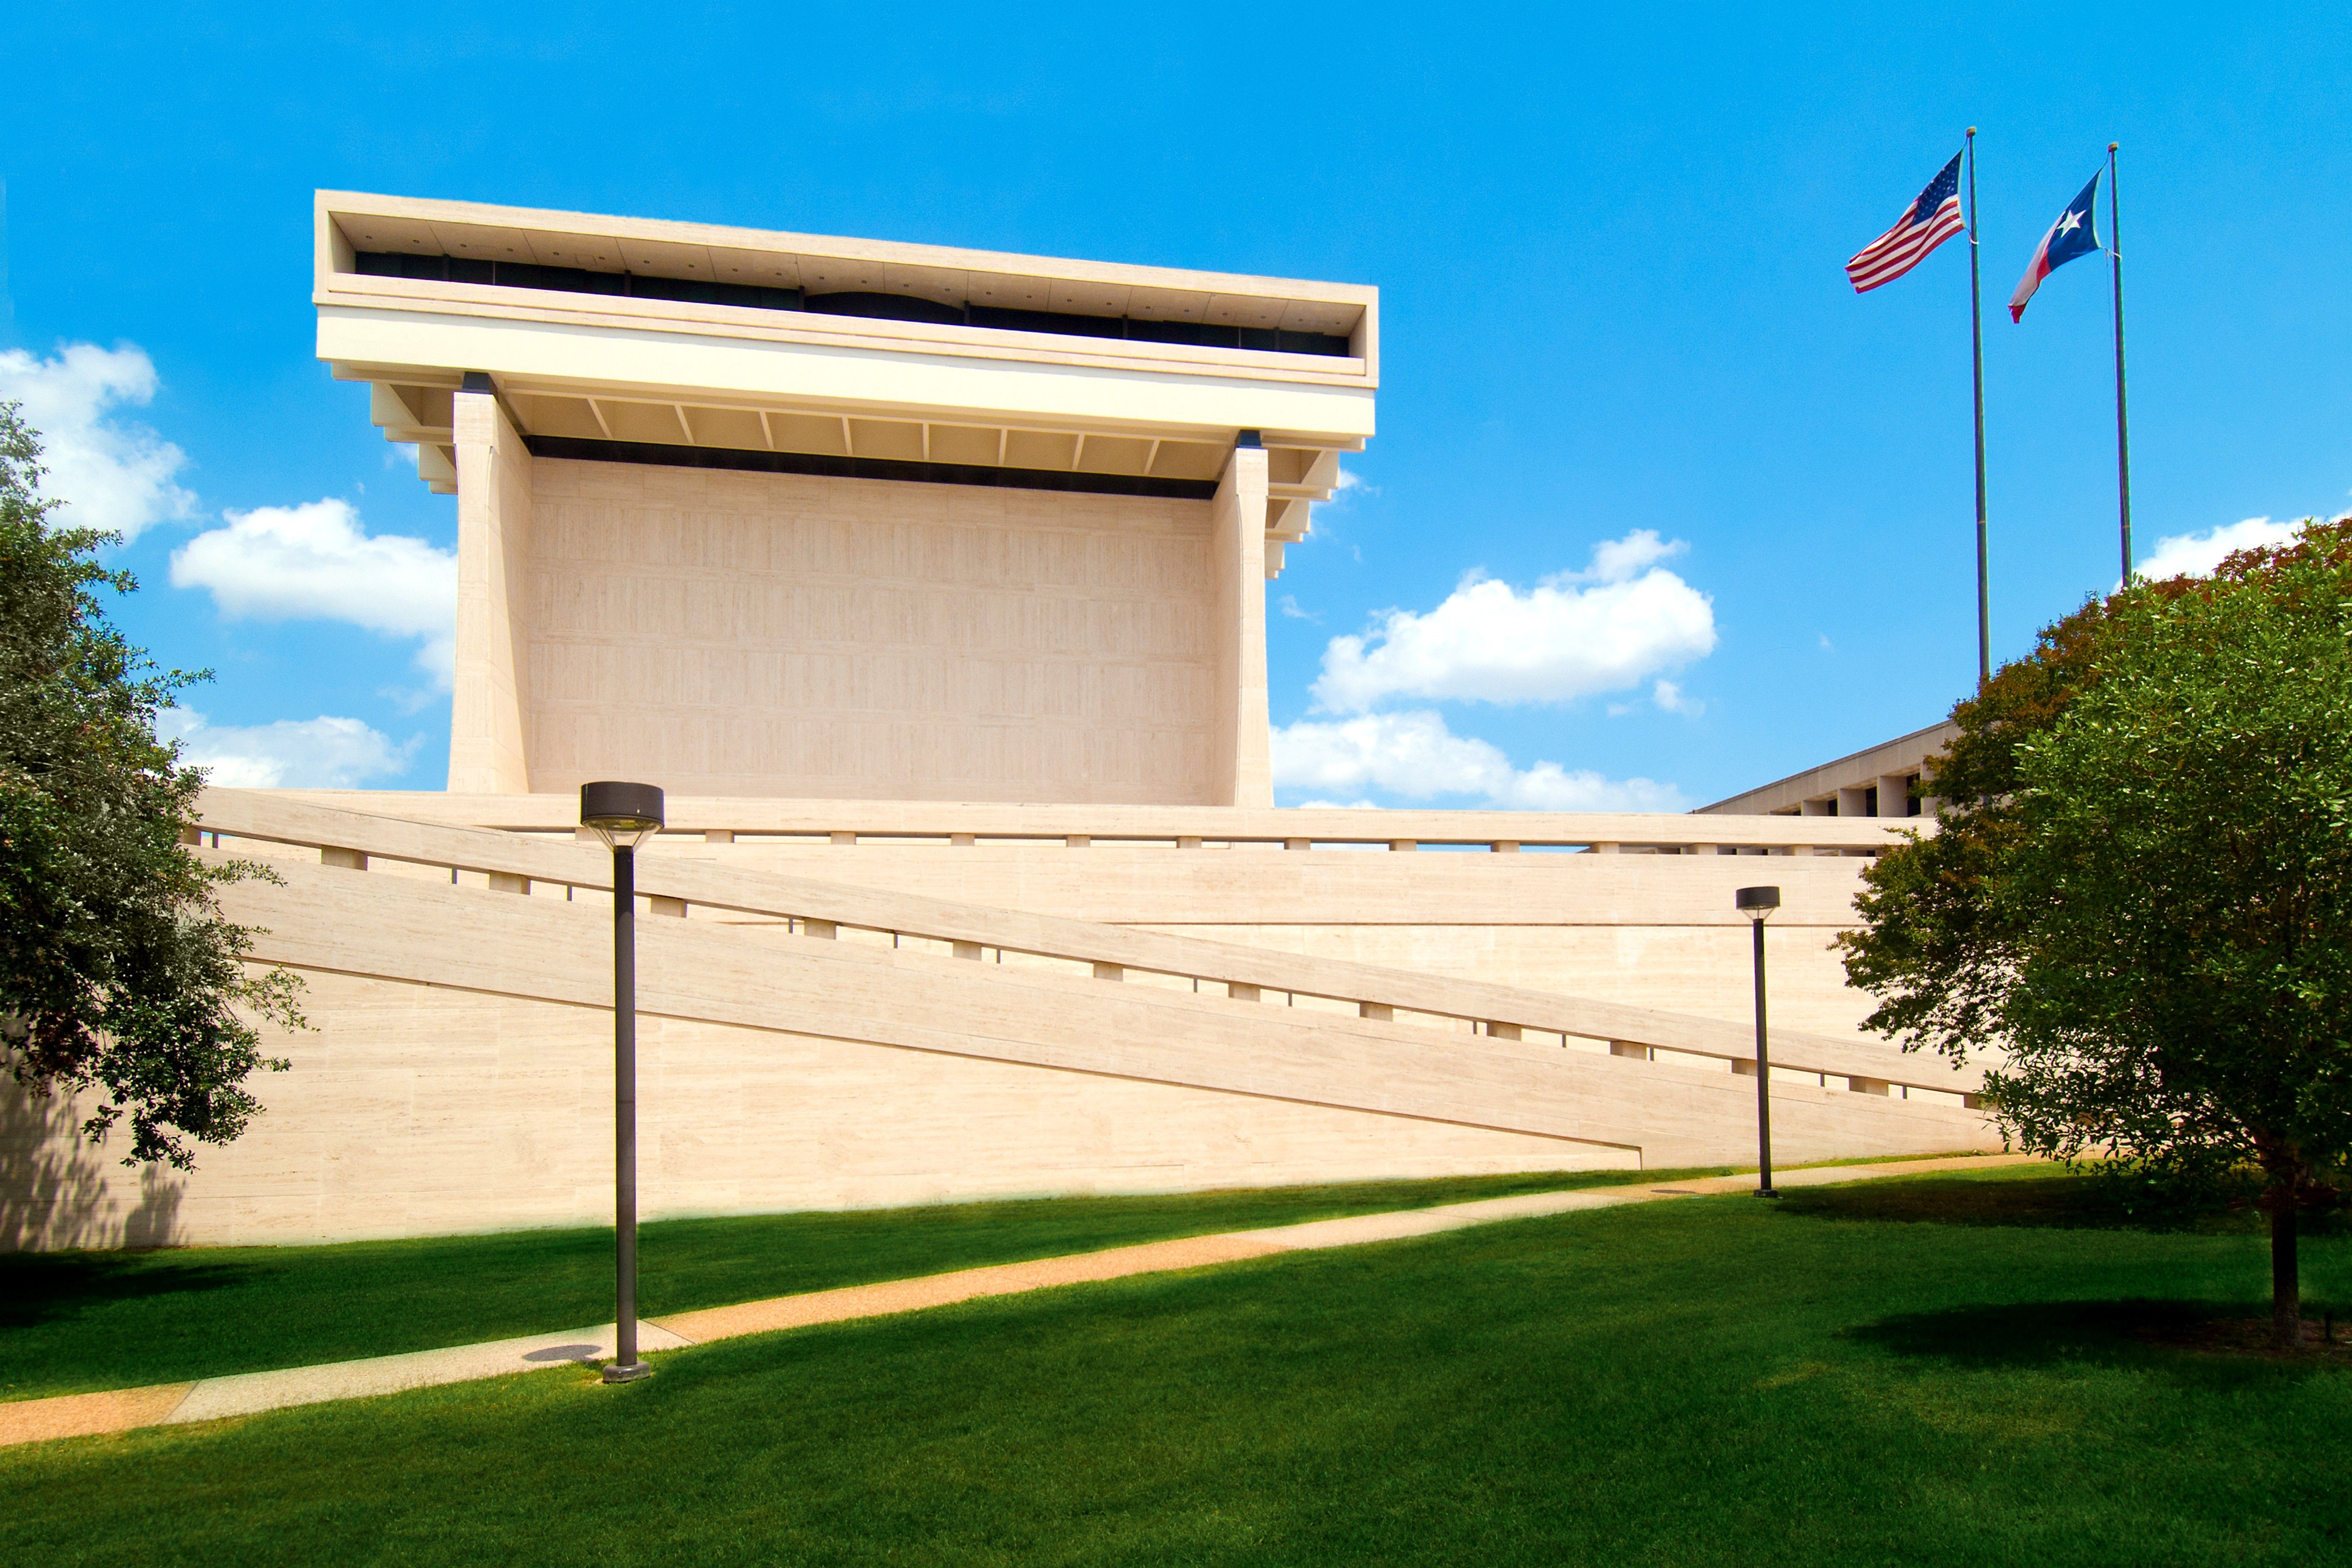 The Lyndon B. Johnson Library and Museum in Texas on a sunny day.